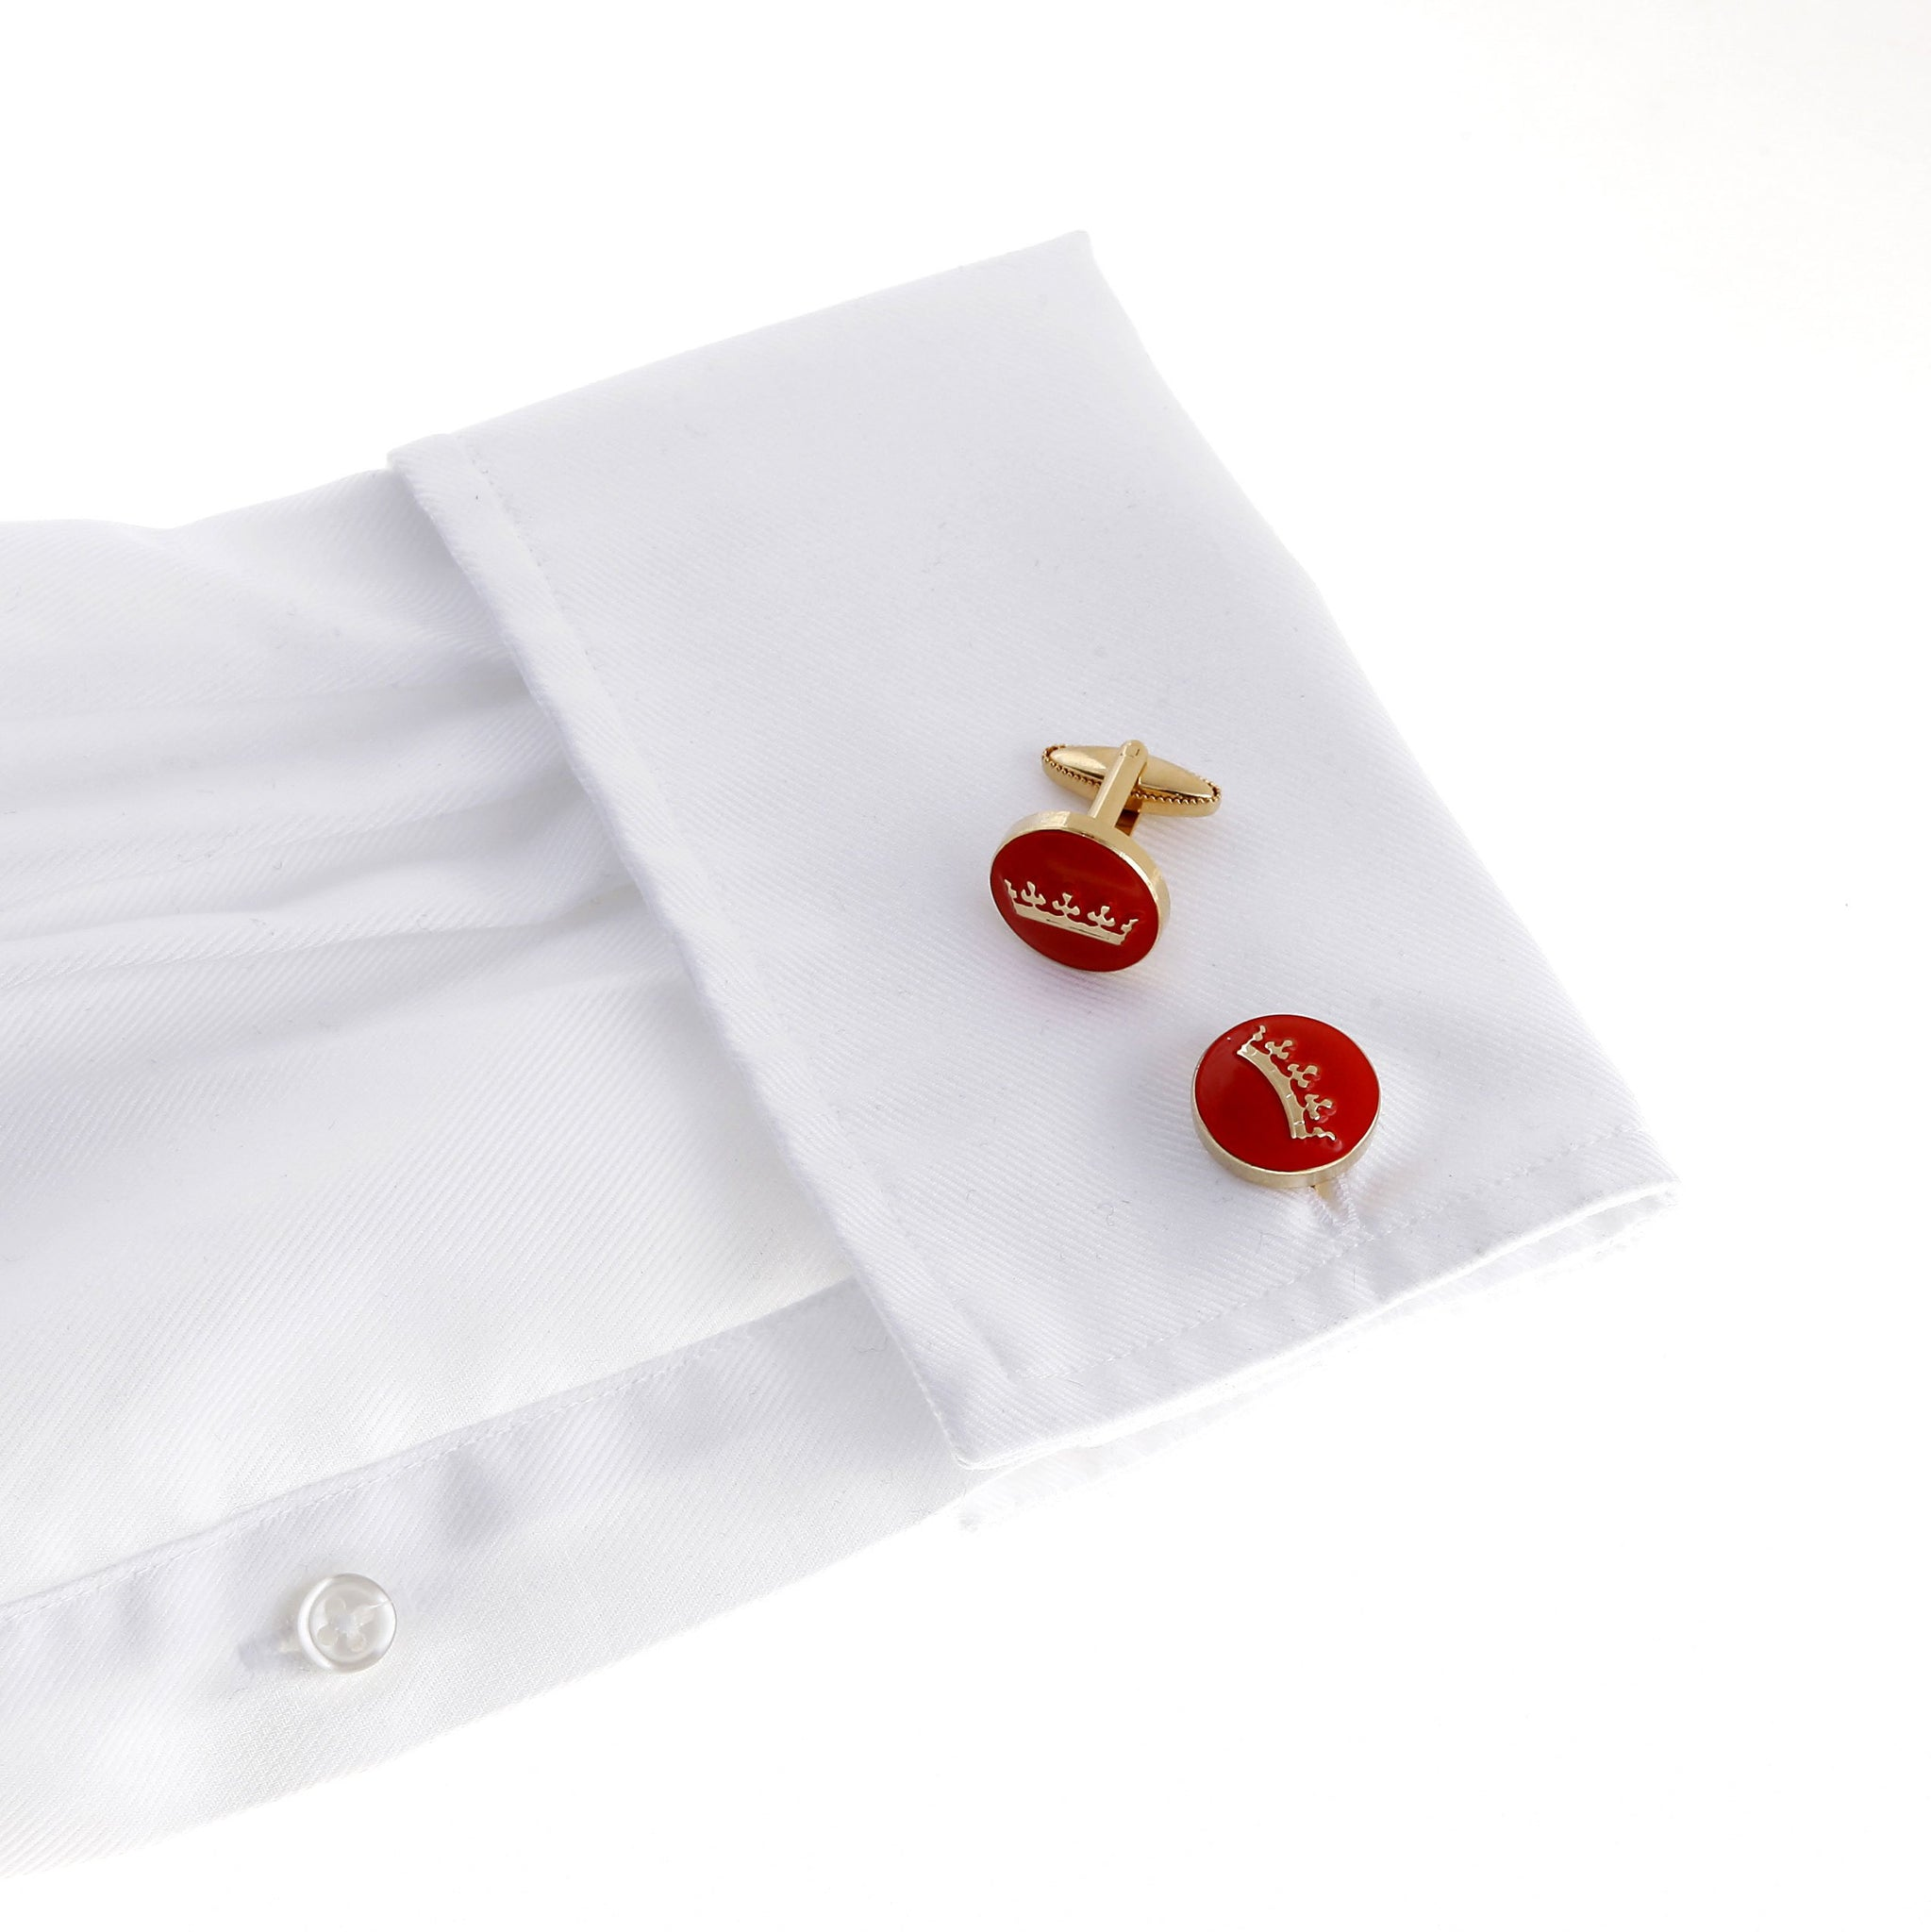 The Crown Cufflink